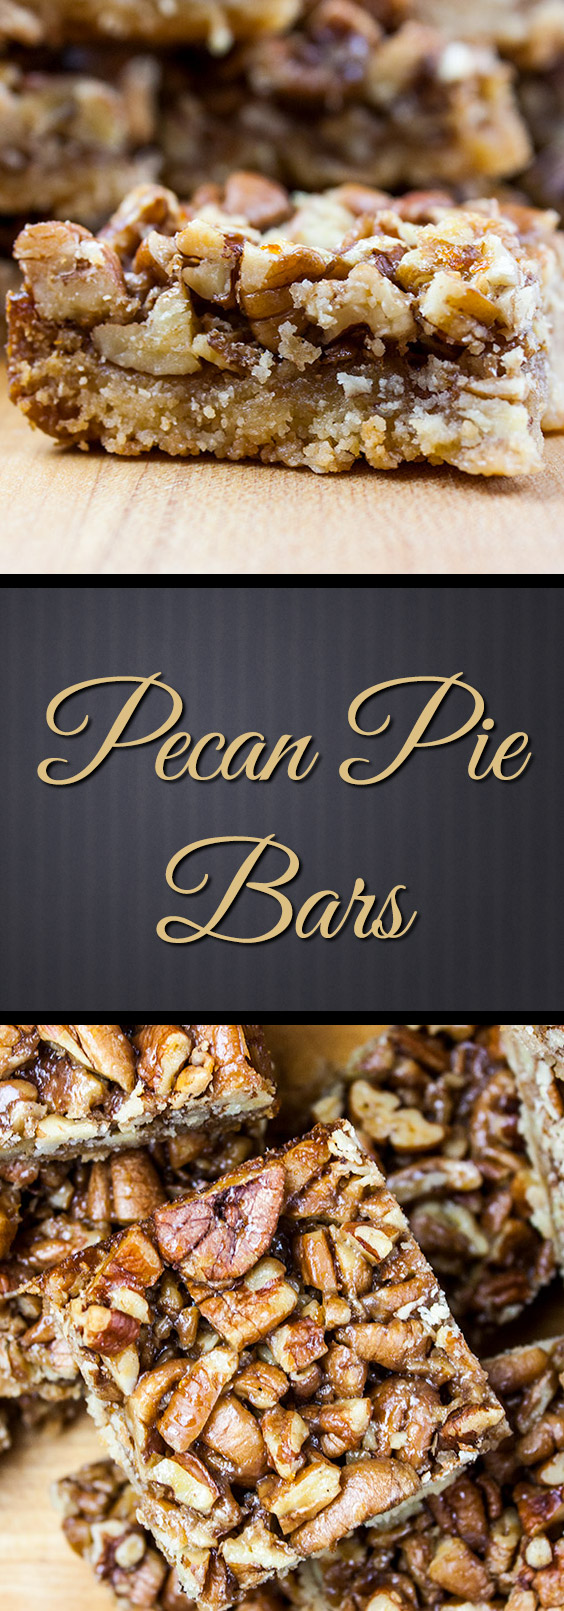 Pecan Pie Bars - A yummy shortbread crust topped with a buttery, nutty pecan pie layer! Warning: HIGHLY addictive!